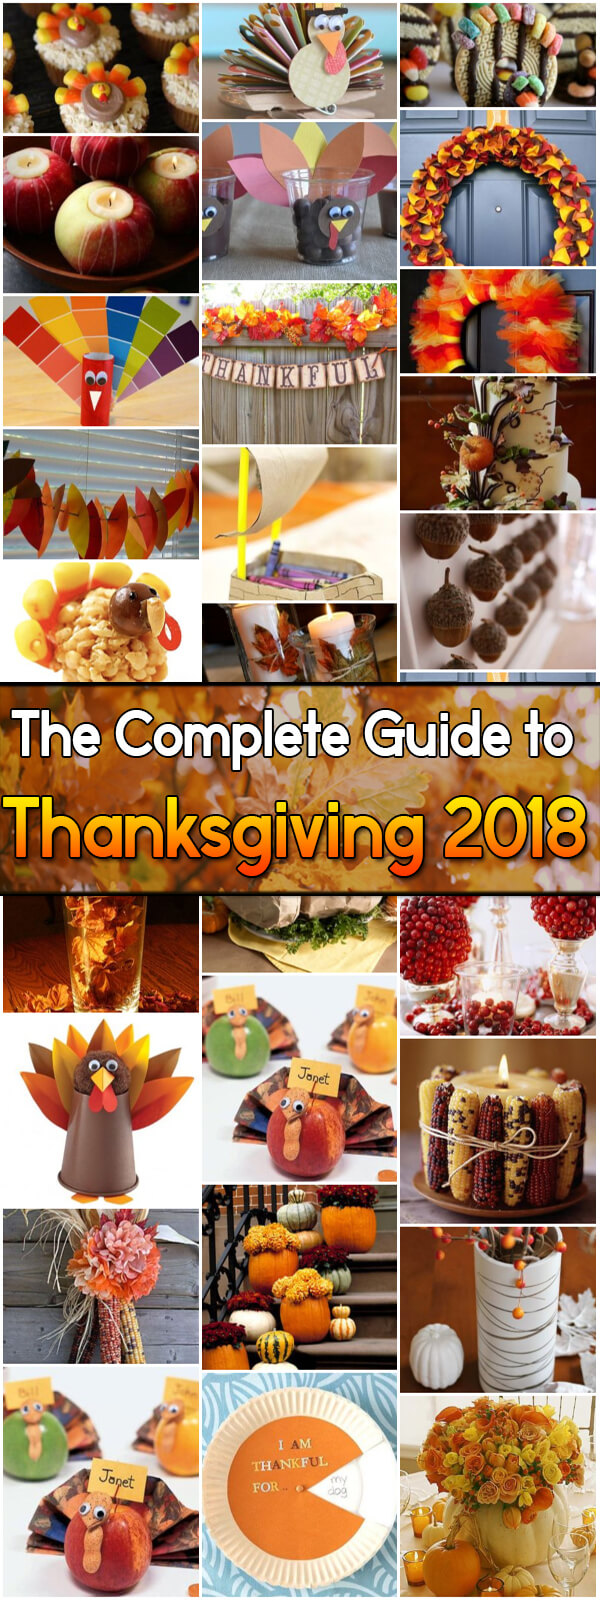 The Complete Guide to #Thanksgiving 2018 - Holiday Vault